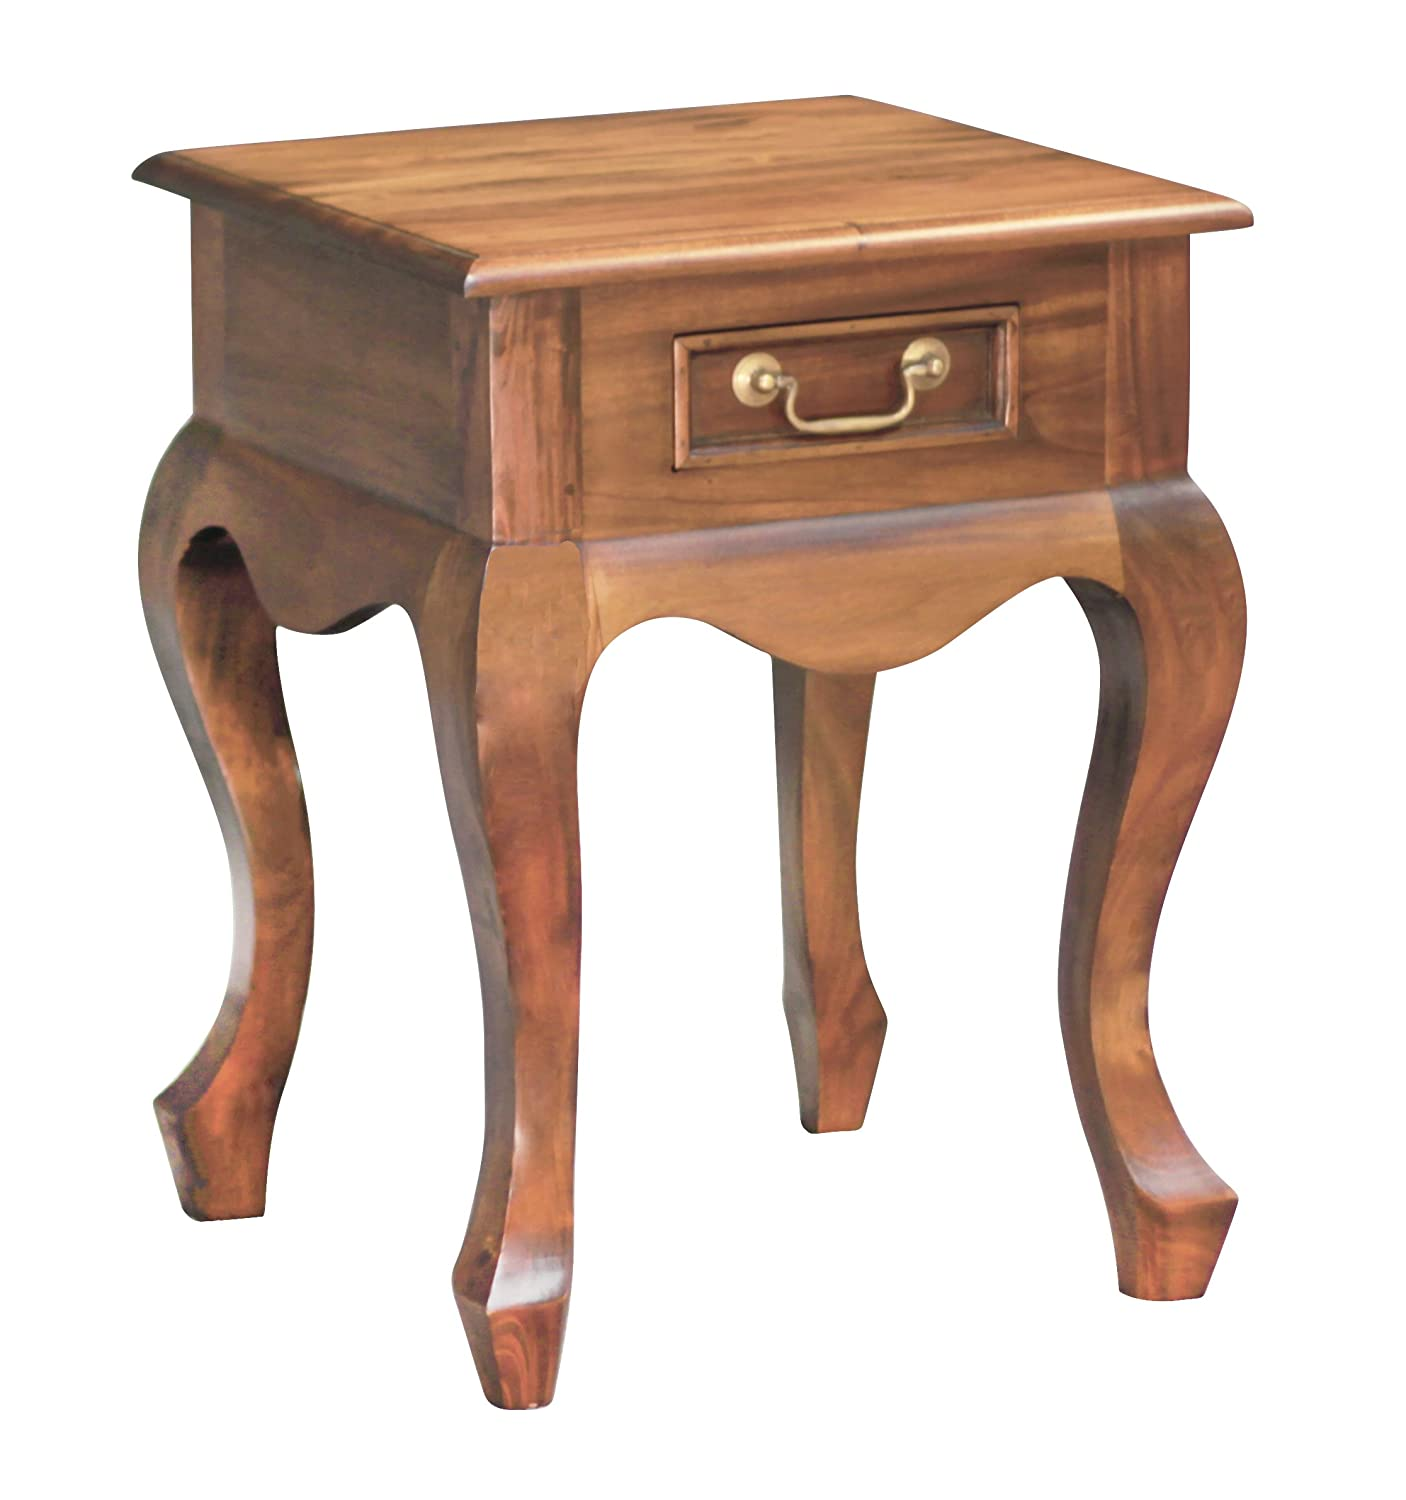 NES Furniture abc10286 Queen Anne Nightstand Fine Handcrafted Solid Mahogany Wood 24 inches Pecan